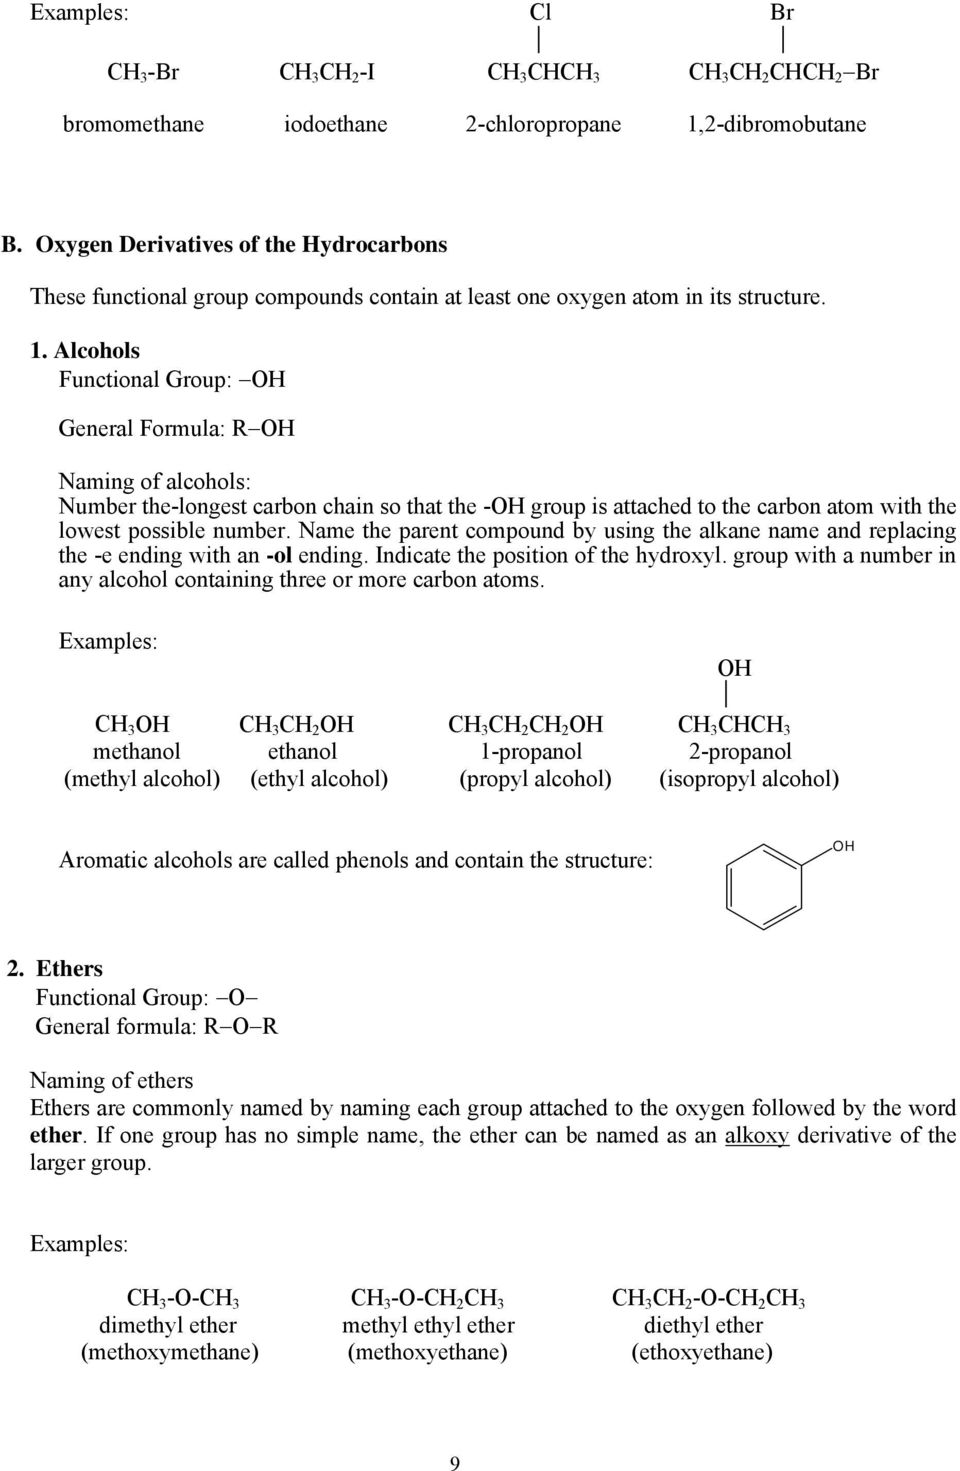 Alcohols Functional Group: H General Formula: RH Naming of alcohols: Number the-longest carbon chain so that the -H group is attached to the carbon atom with the lowest possible number.